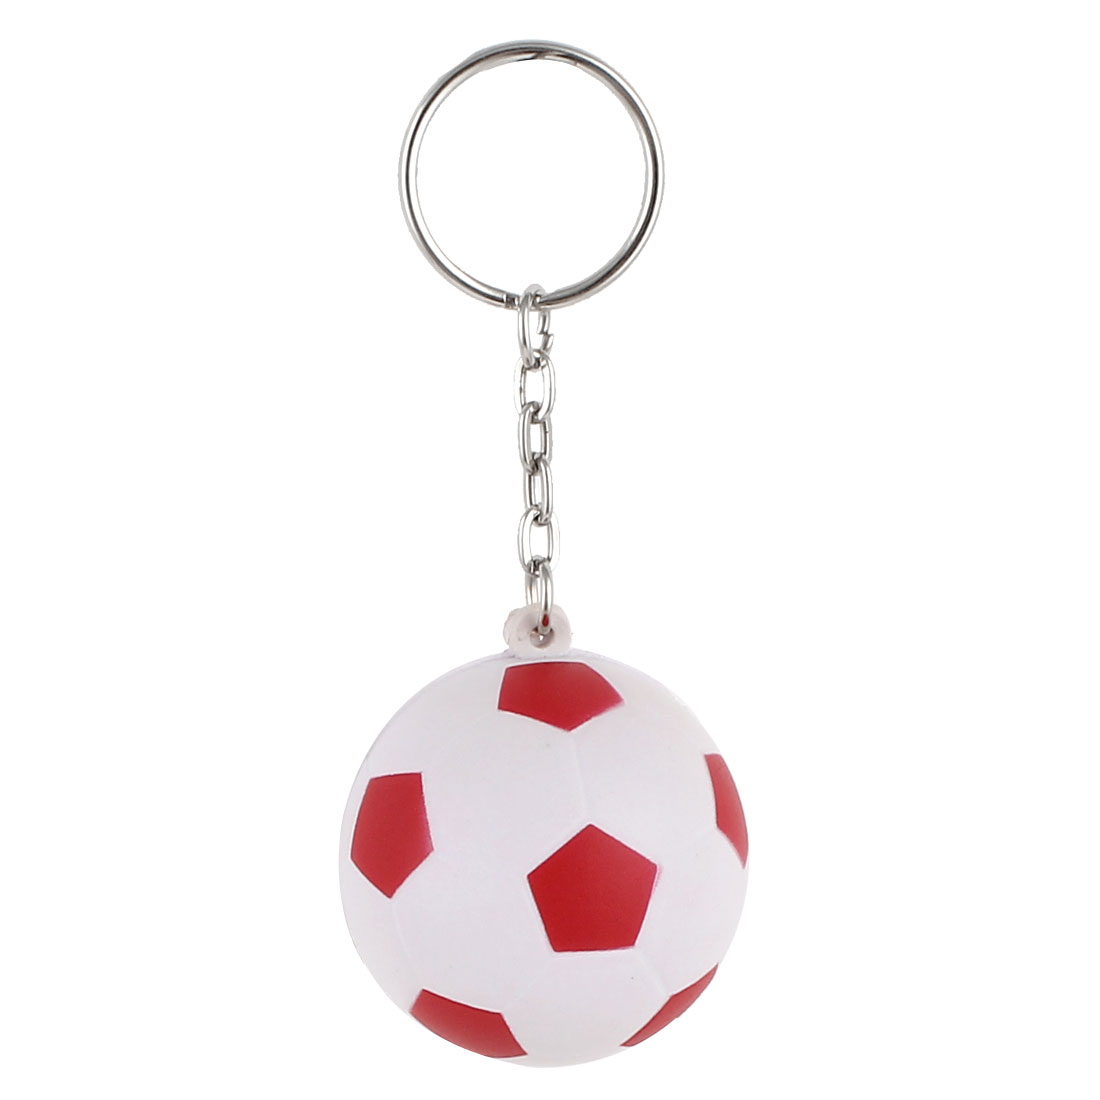 White Red Football Design Dangling Pendant Keychain Keyring Hanging Ornament